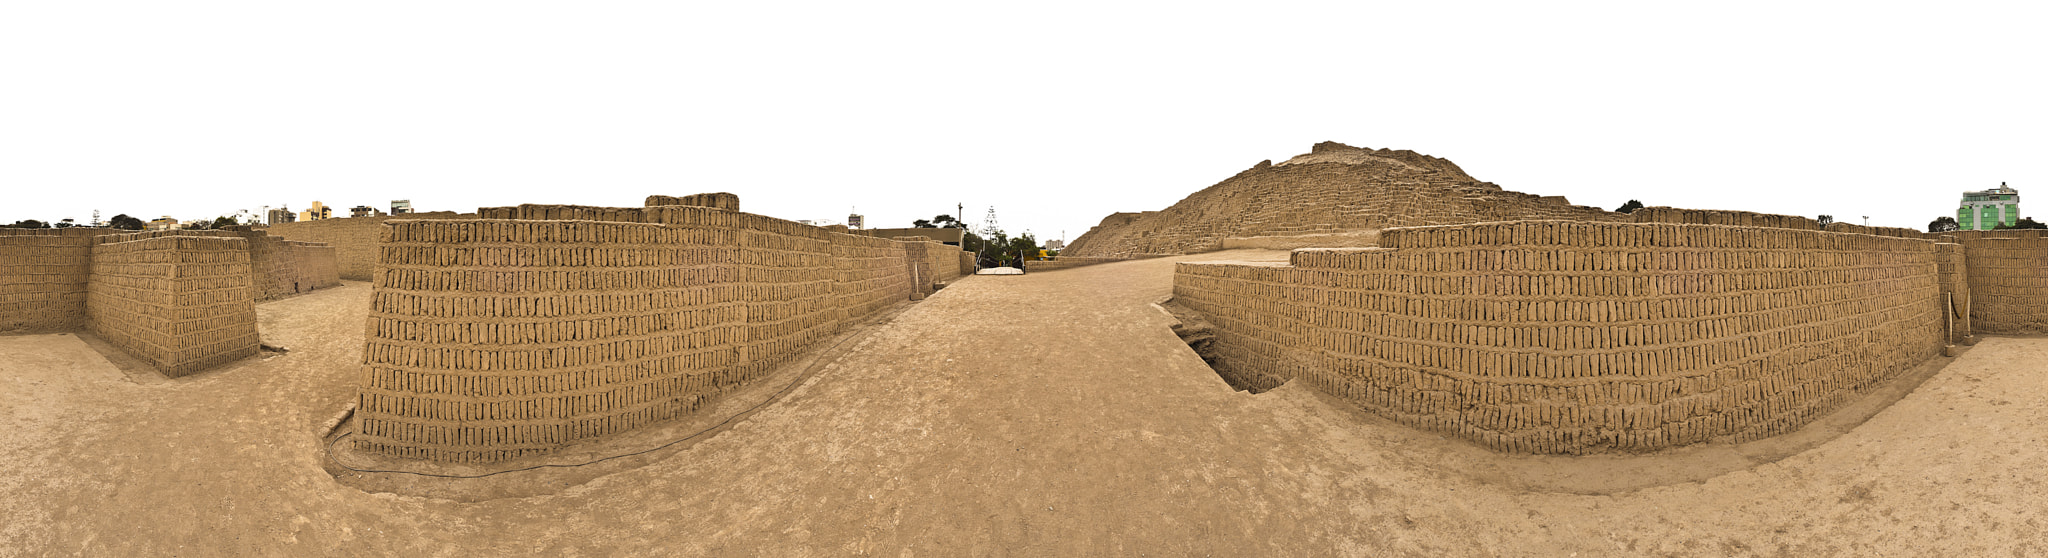 Photograph Huaca Pucllana, Lima, Perú. by Mike Joints on 500px